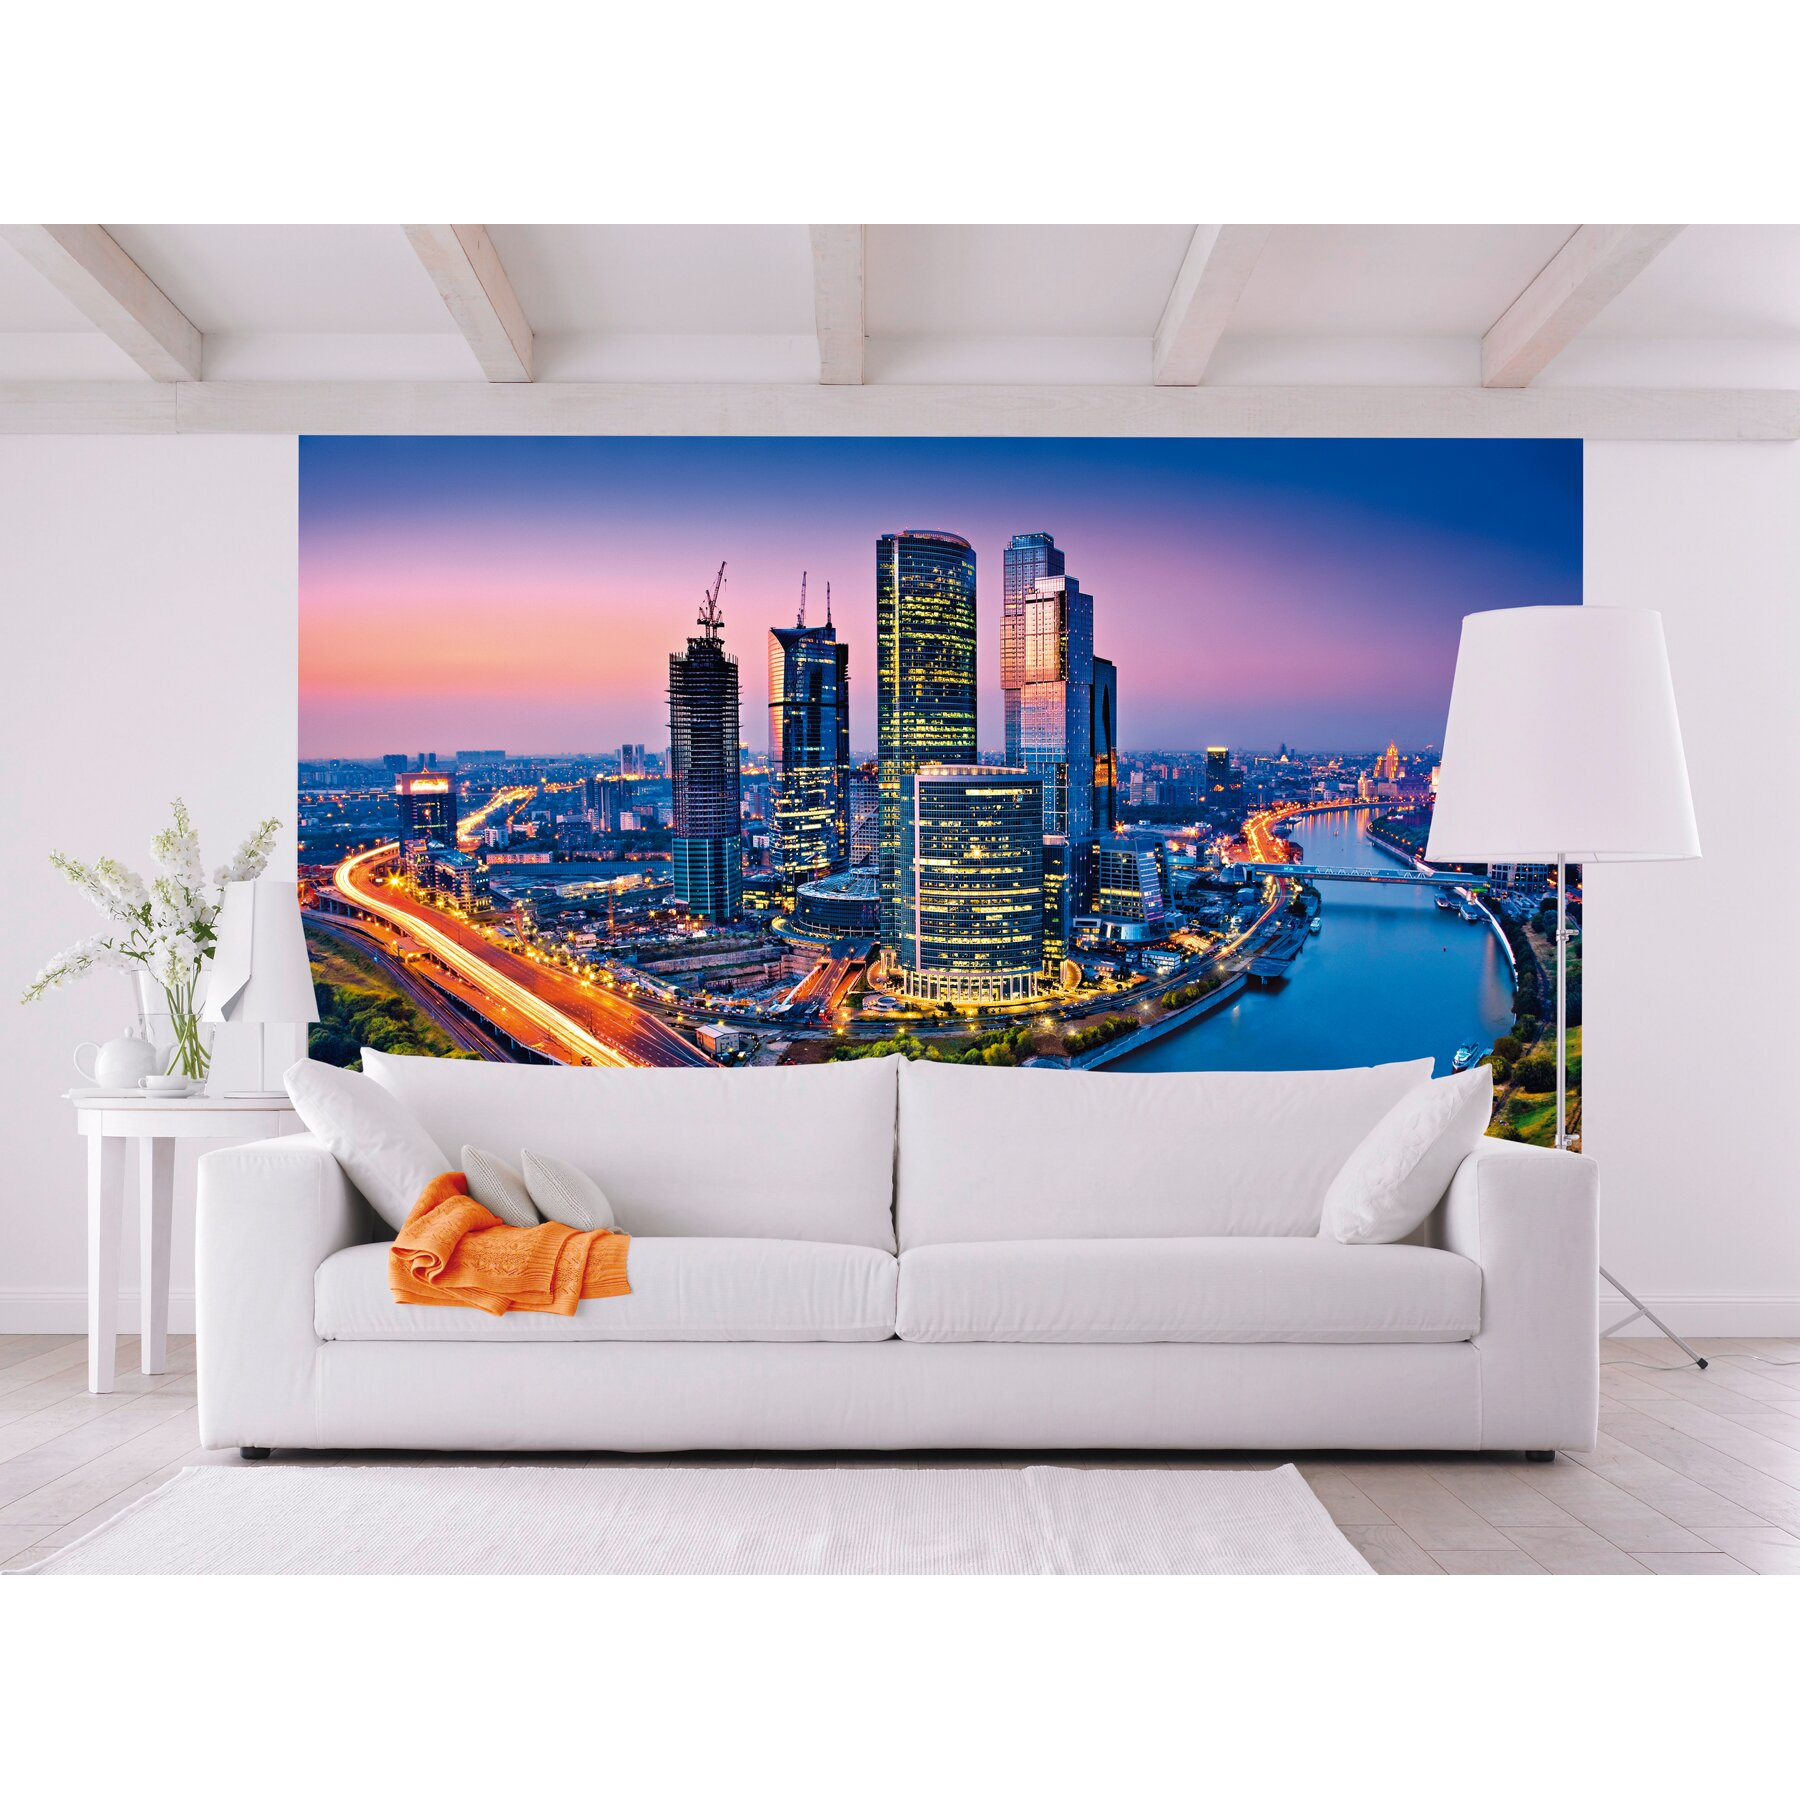 Ideal decor moscow twilight wall mural wayfair for Brewster wall mural